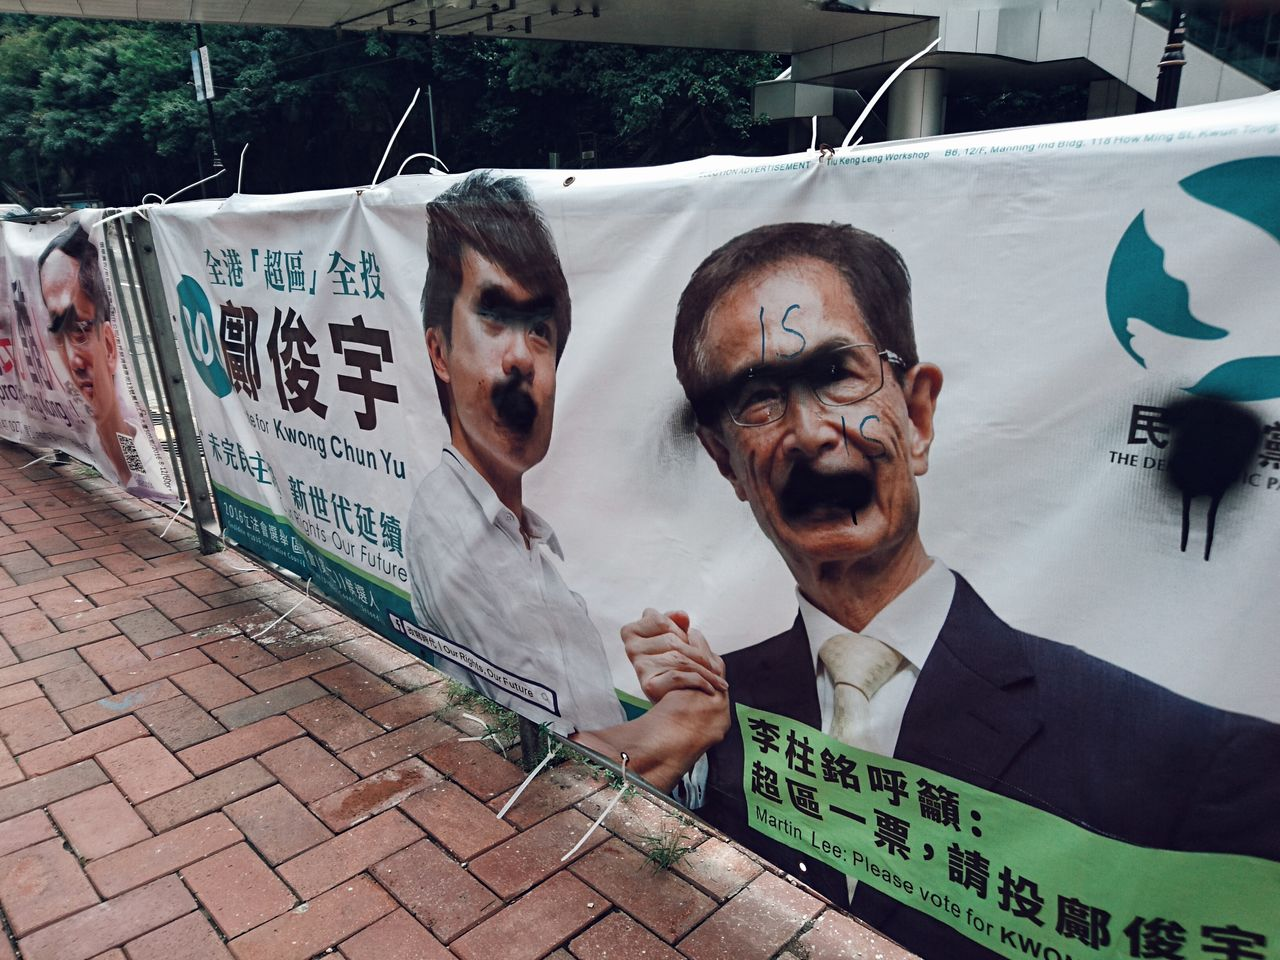 選舉-抹黑 2016, September 4 is the election day of hong kong legislative council, this candidate's campaign banner is disgraced by the competitors' supporter(s). Urbanphotography Election Day Election City Life Streetphotography Dailylife City Street Snapshots Of Life Streetphoto_color Street Photography Dailyphoto XperiaZ5 AMPt Street Life Streetphoto Eye4photography  AMPt_community NEM Street Urban Exploration Documentary Photography Documentary Election Campaign Sony Xperia